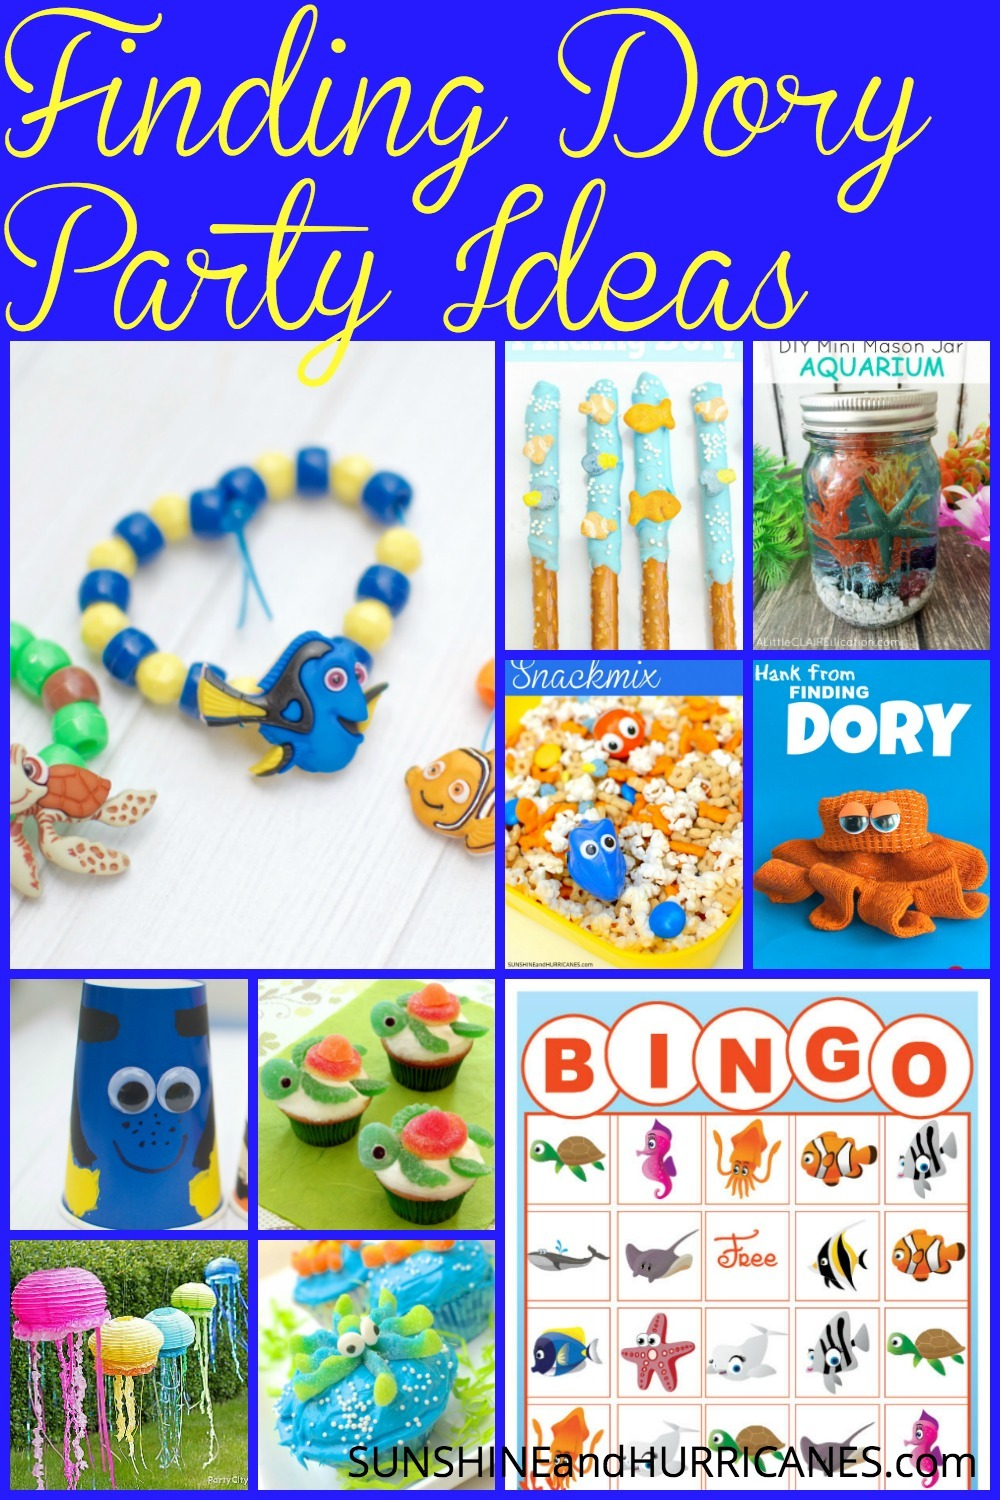 This post is full of Finding Dory Party Ideas! Food, crafts, games, party favors, and decorations are all in one easy place to help you plan! Whether it's a birthday party, with an ocean, mermaid, pirate, or shark theme, you'll be ready to party with all these suggestions! Nemo, sea creatures, and more await you in this exciting round up!